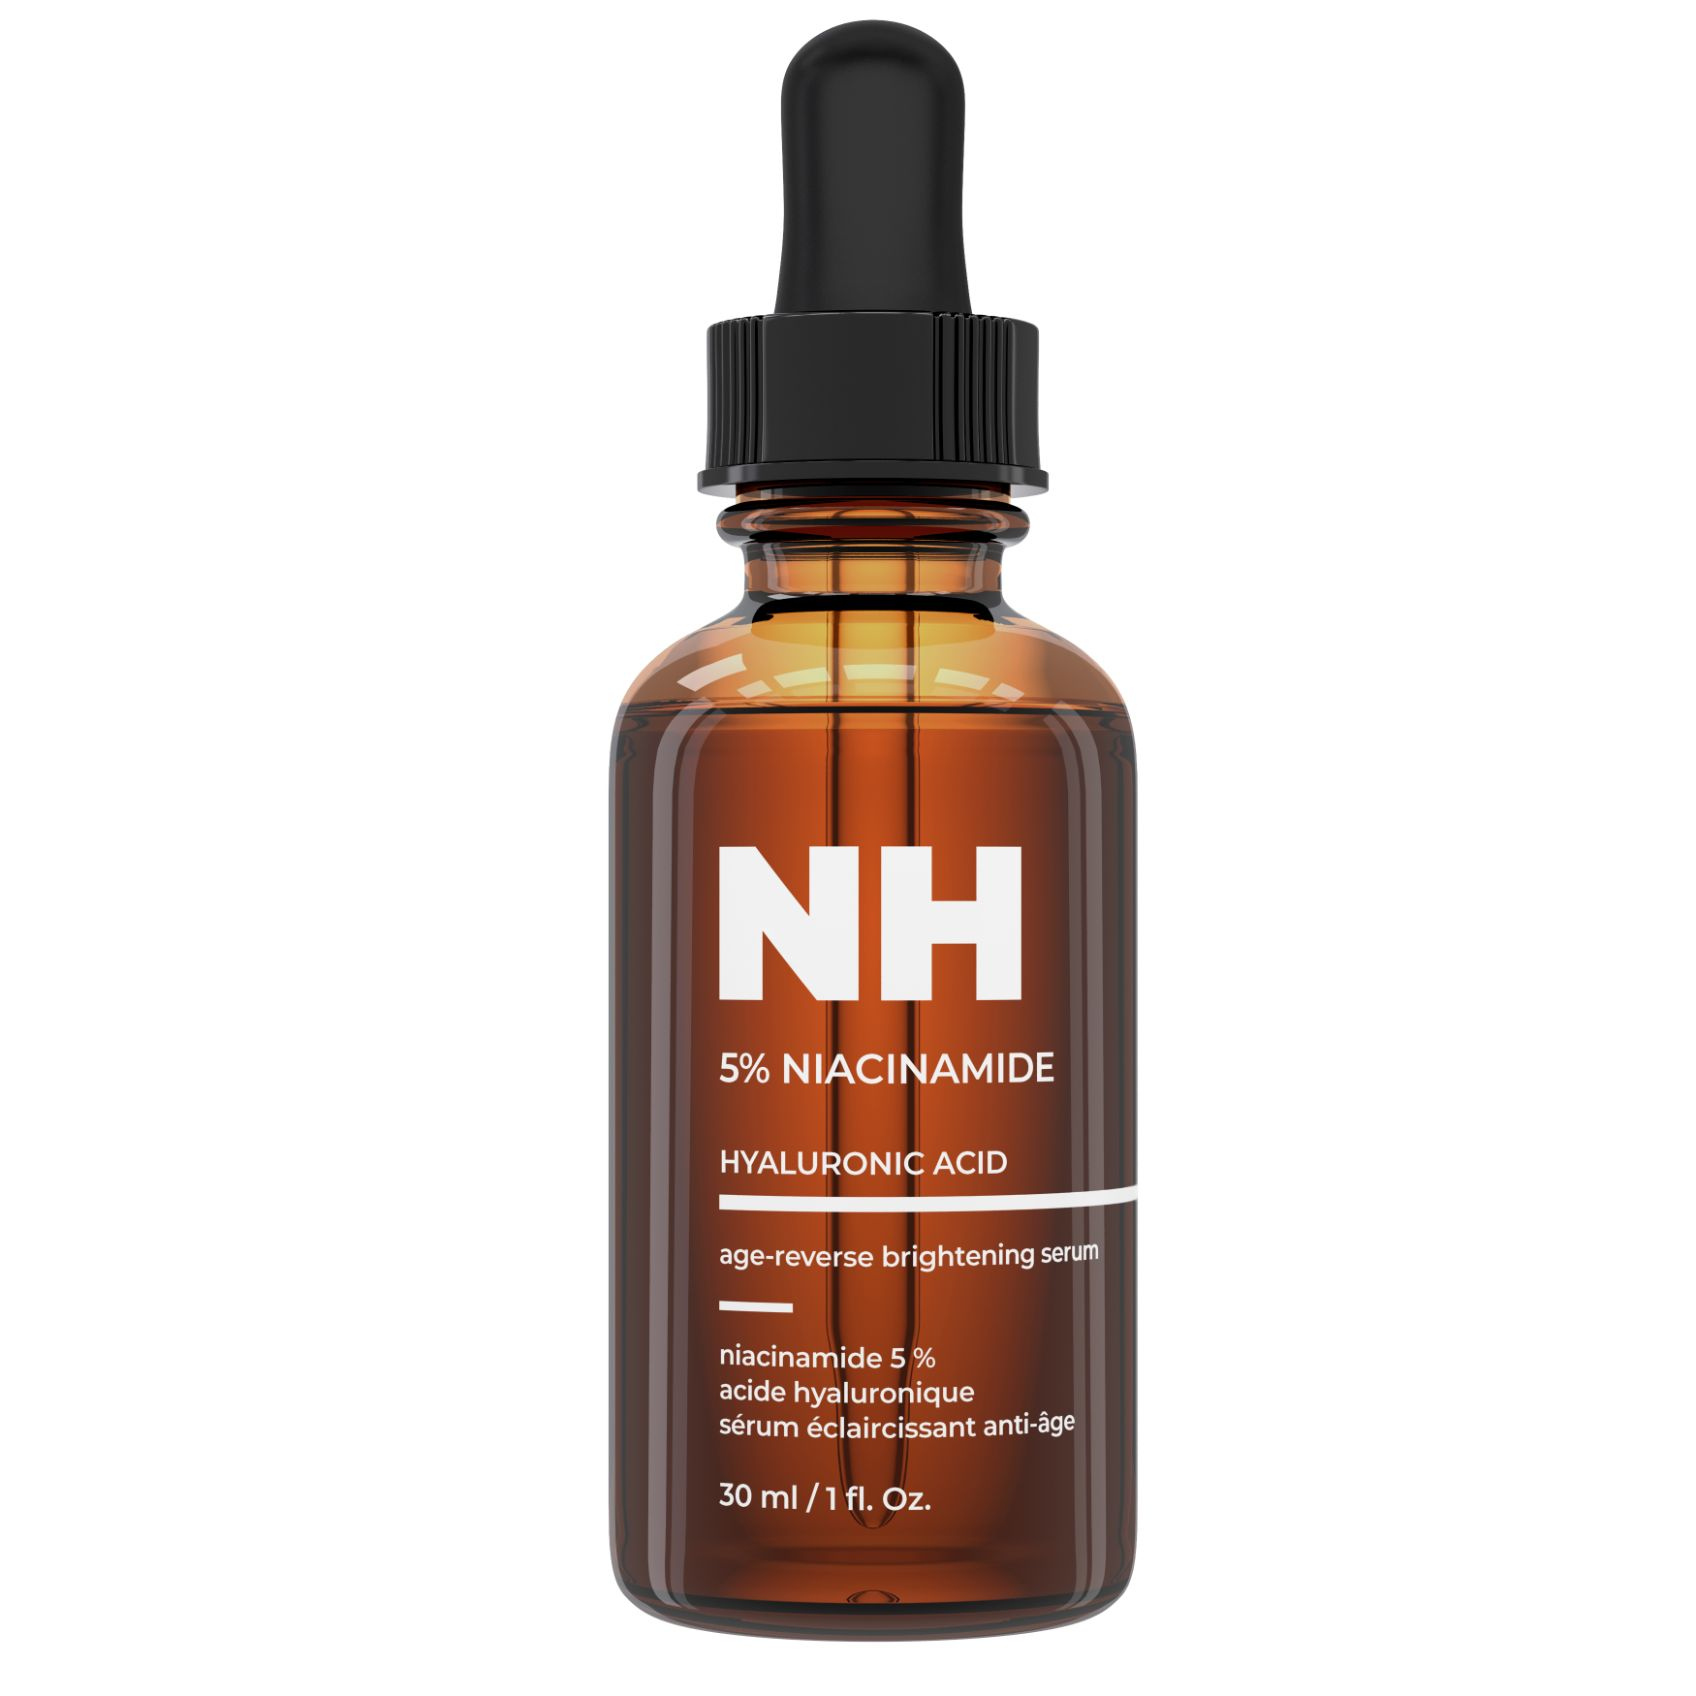 niacinamide serum for skin brightening, anti-aging and wrinkle control